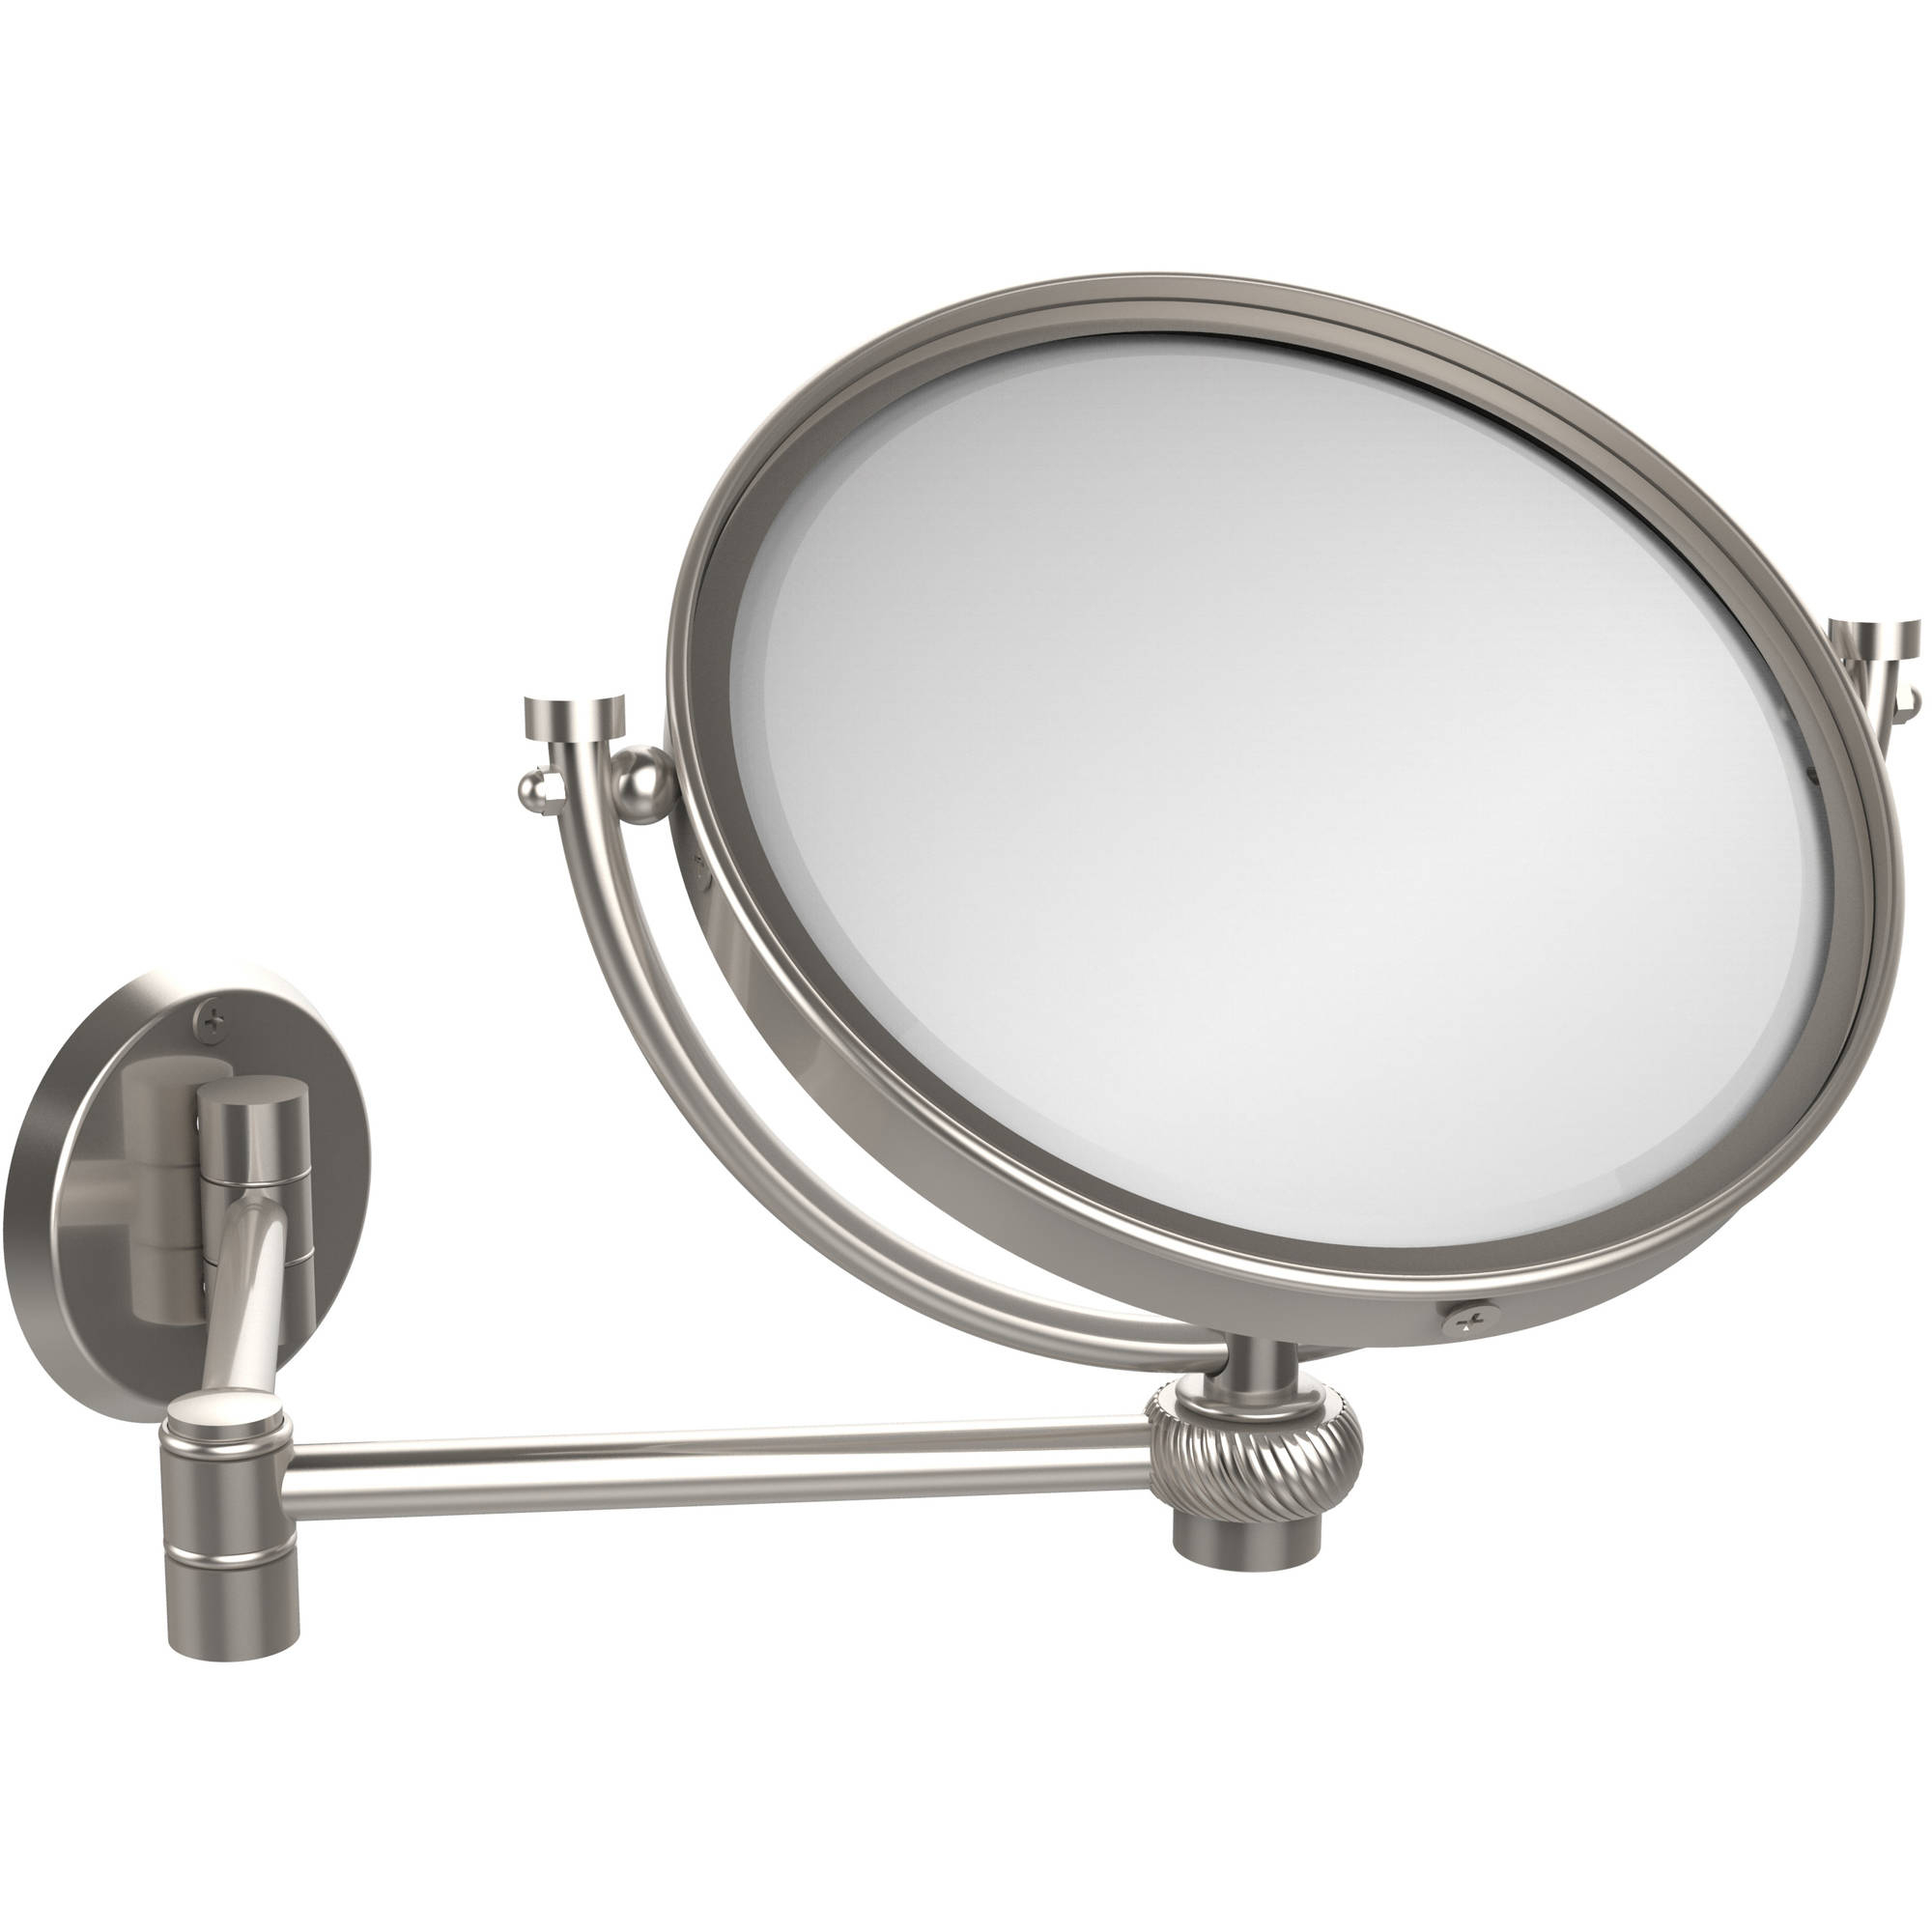 "Extending Wall Mirrors For Fashionable 8"" Wall Mounted Extending Make Up Mirror, 4x Magnification With Twist Accent (build To Order) (View 17 of 20)"